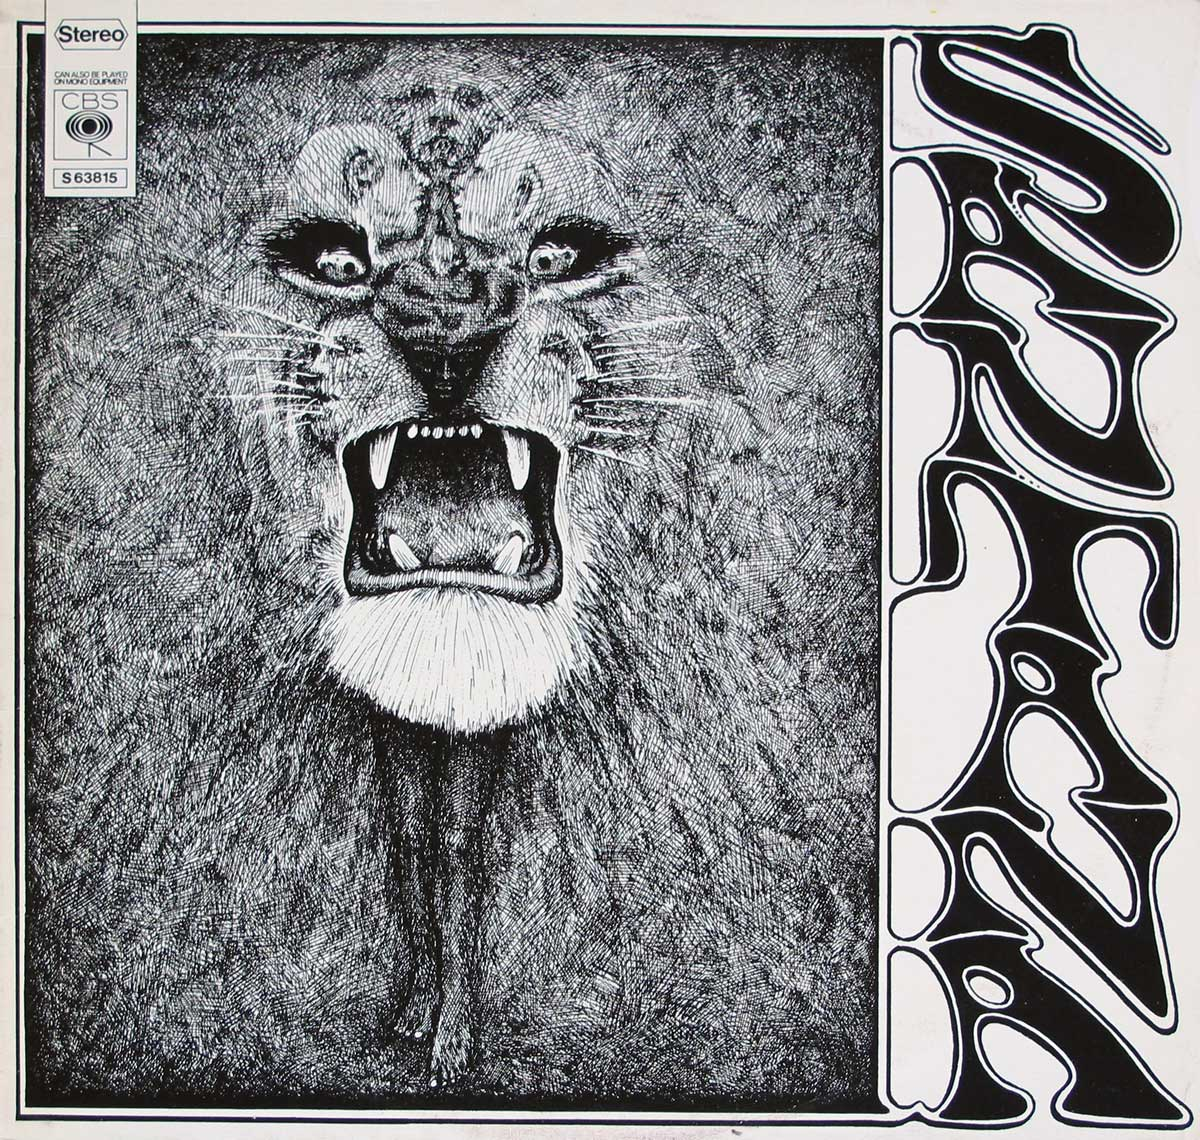 large photo of the album front cover of: Santana's debut album